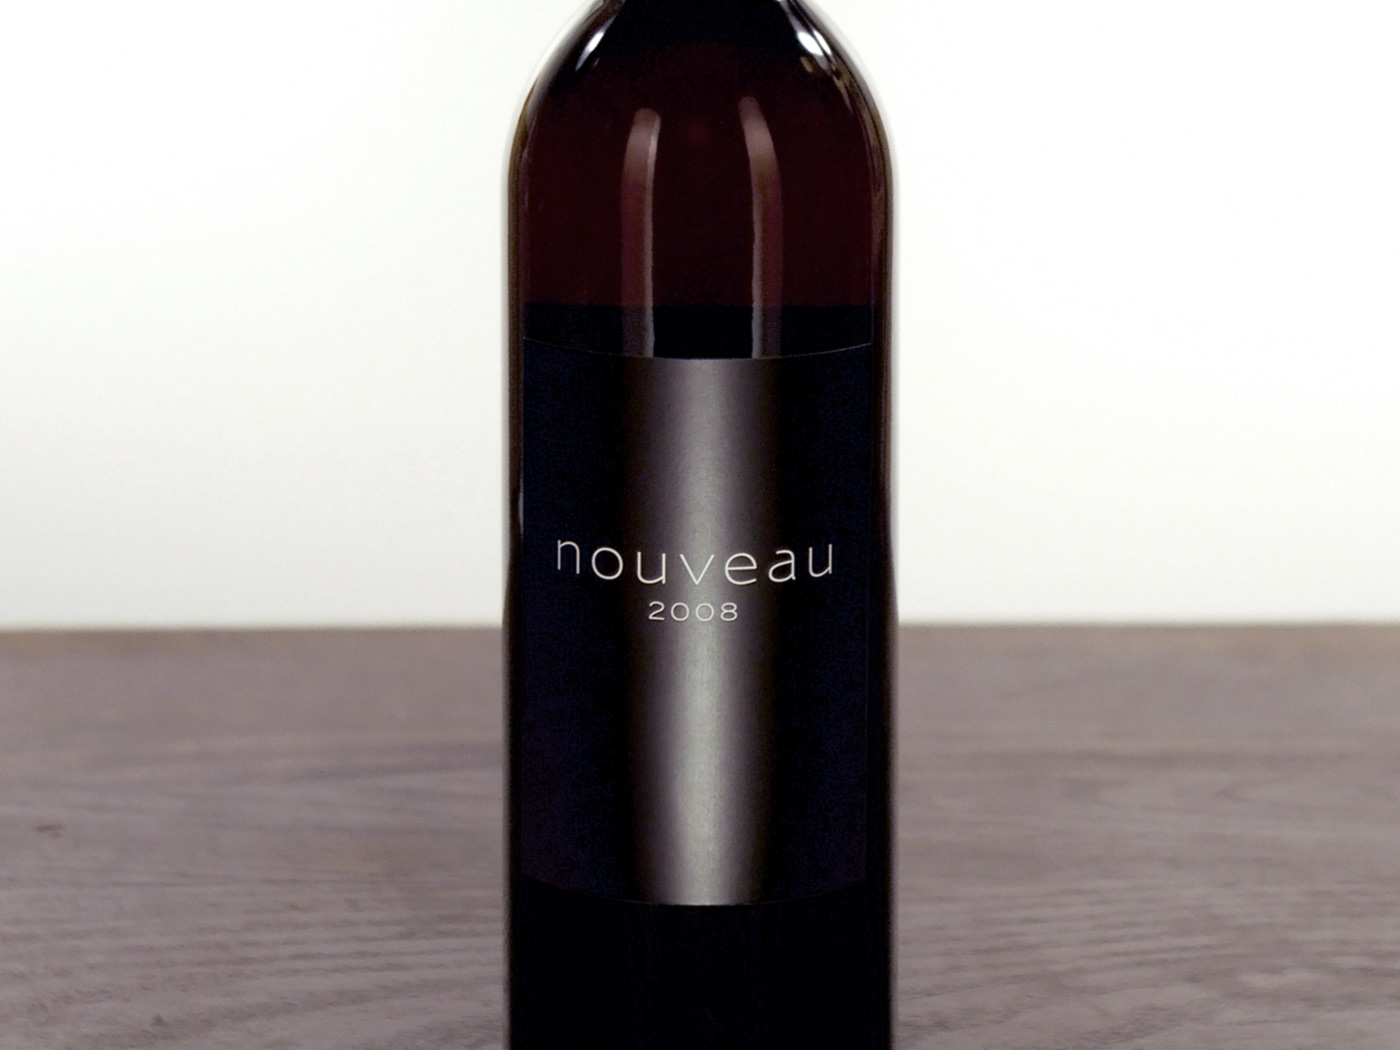 Nouveau wine label